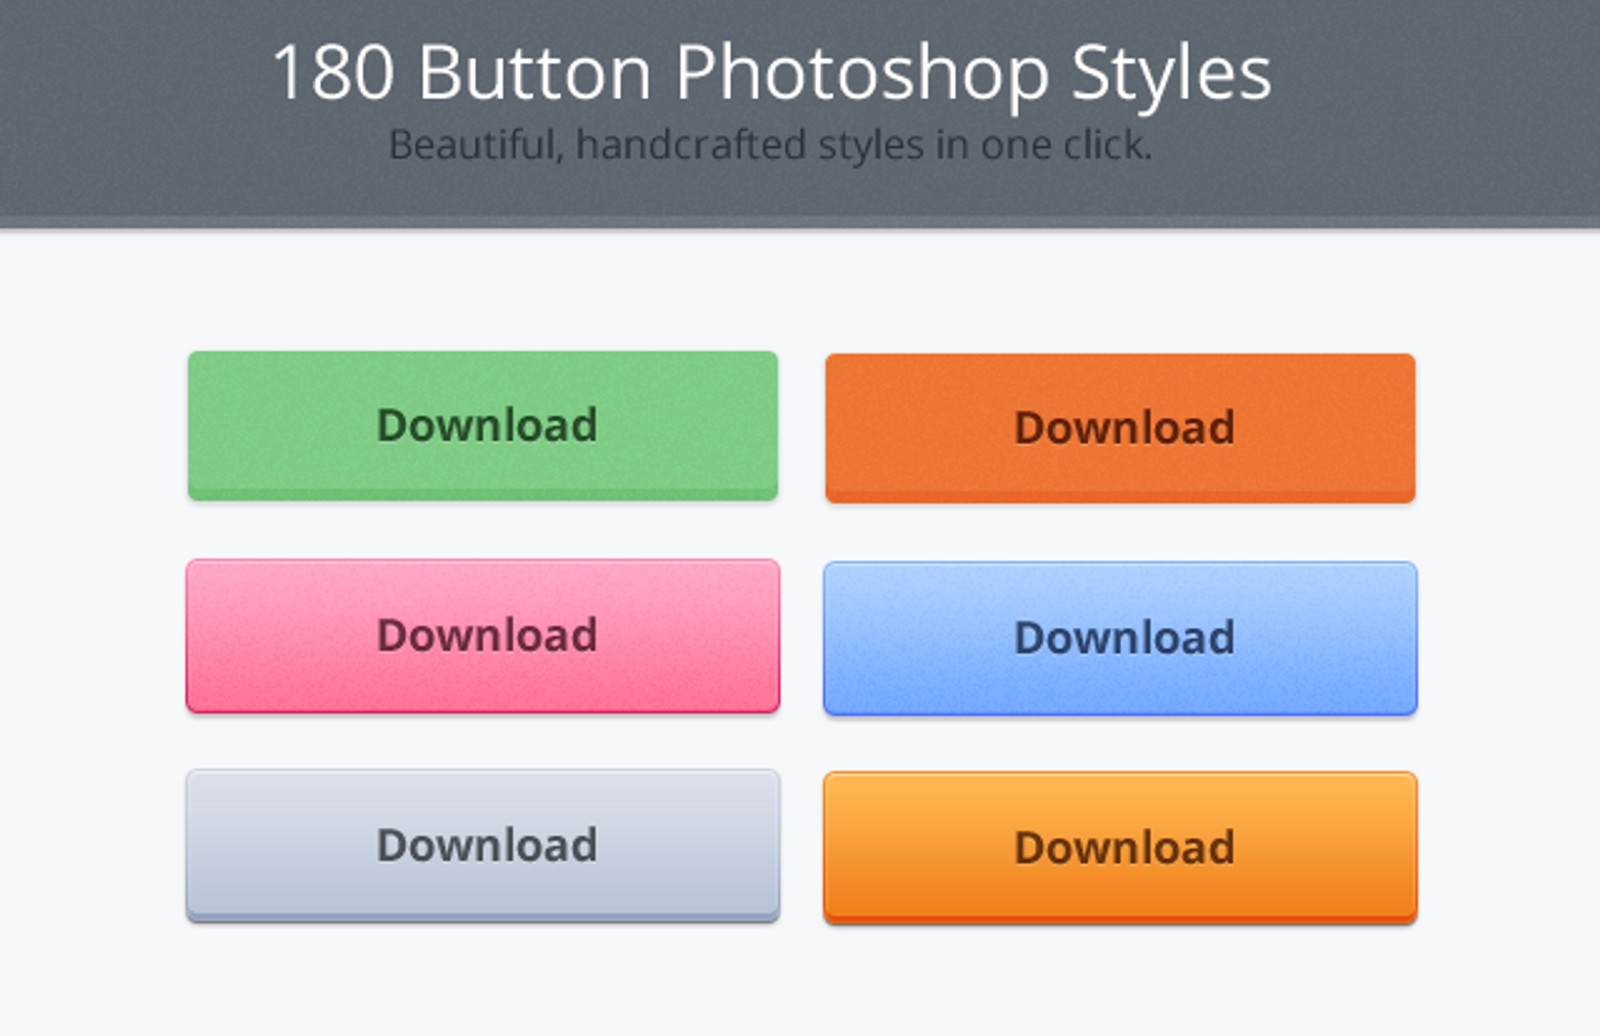 180  Photoshop  Button  Styles  Preview1